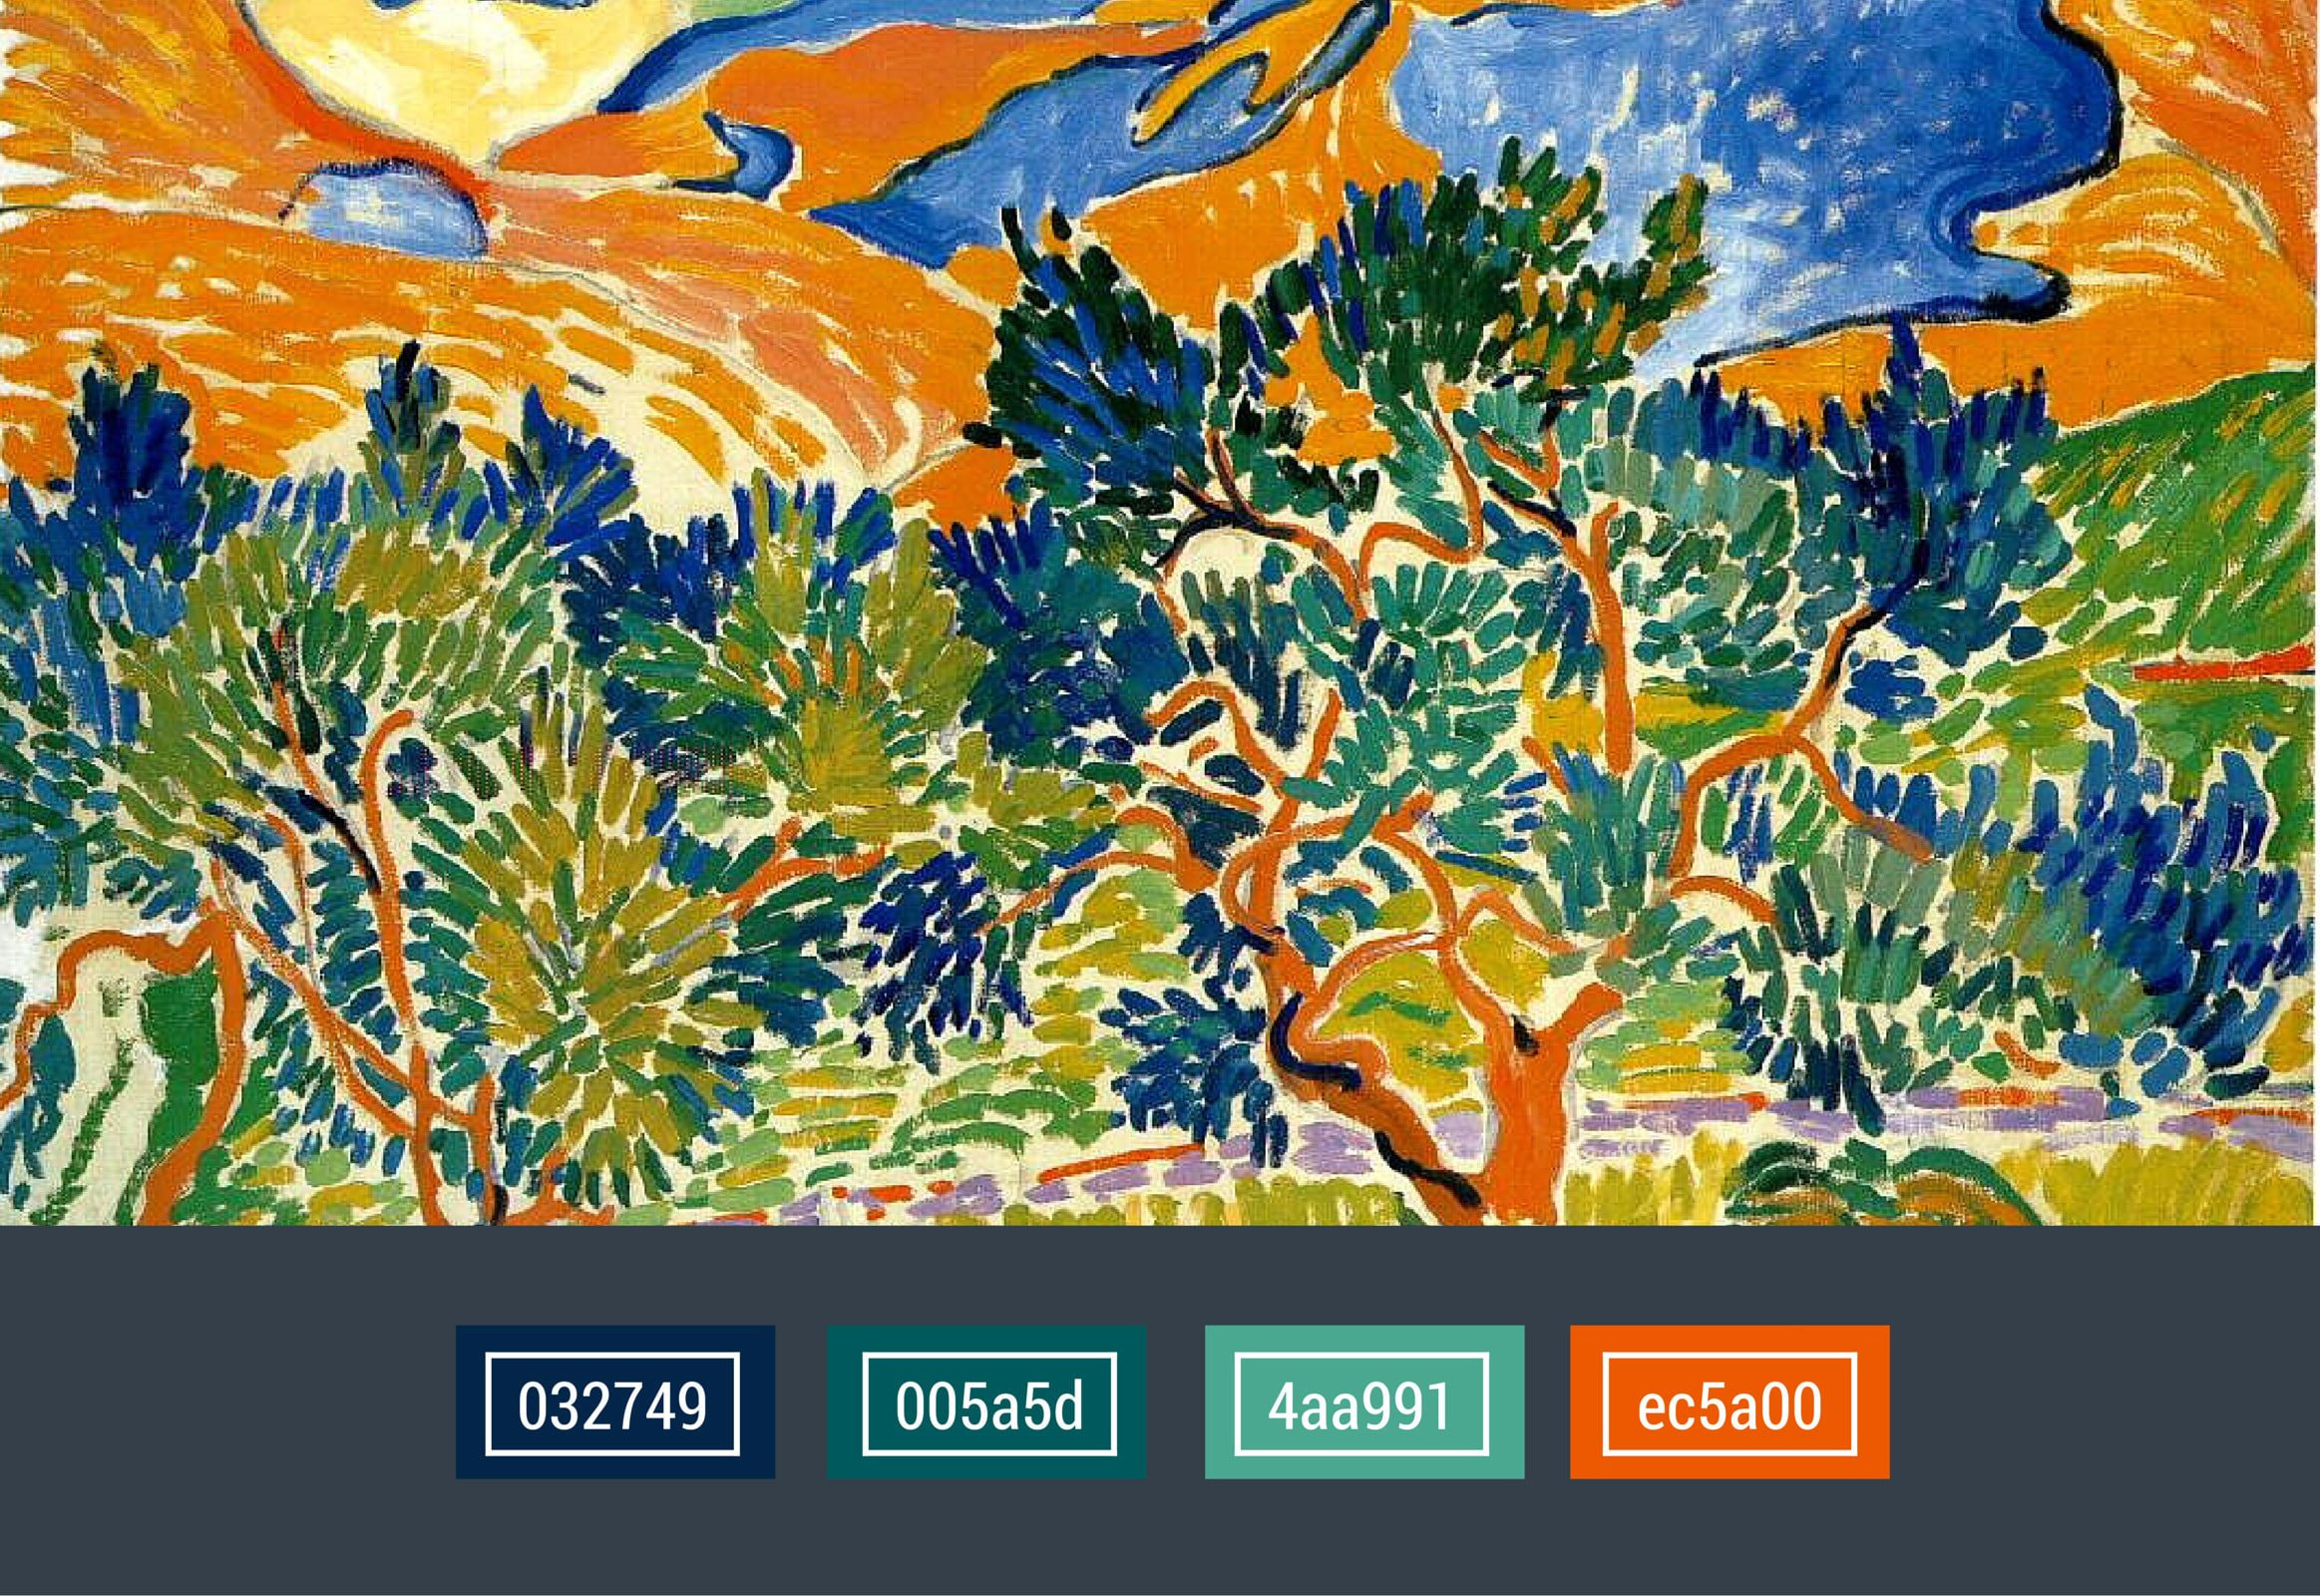 colors used in the Fauvism movement